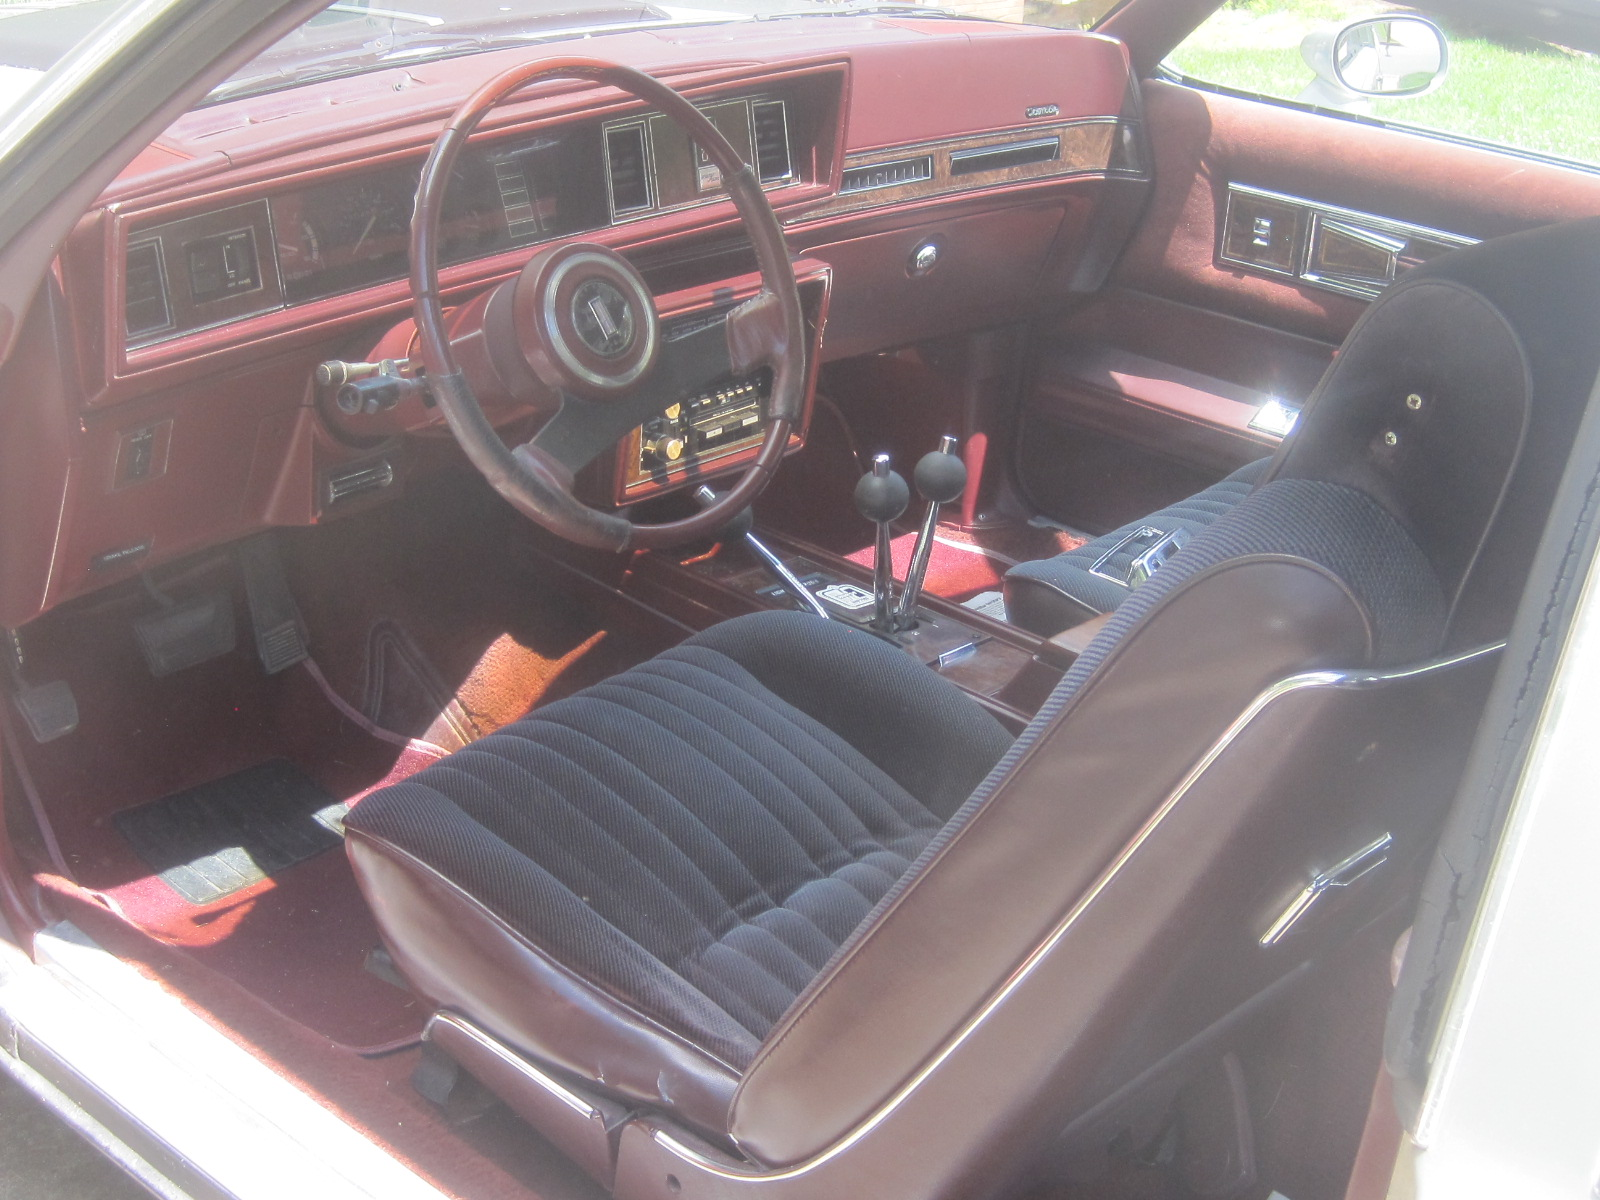 1984 olds cutlass interior color id oldsmobile general antique automobile club of america discussion forums 1984 olds cutlass interior color id